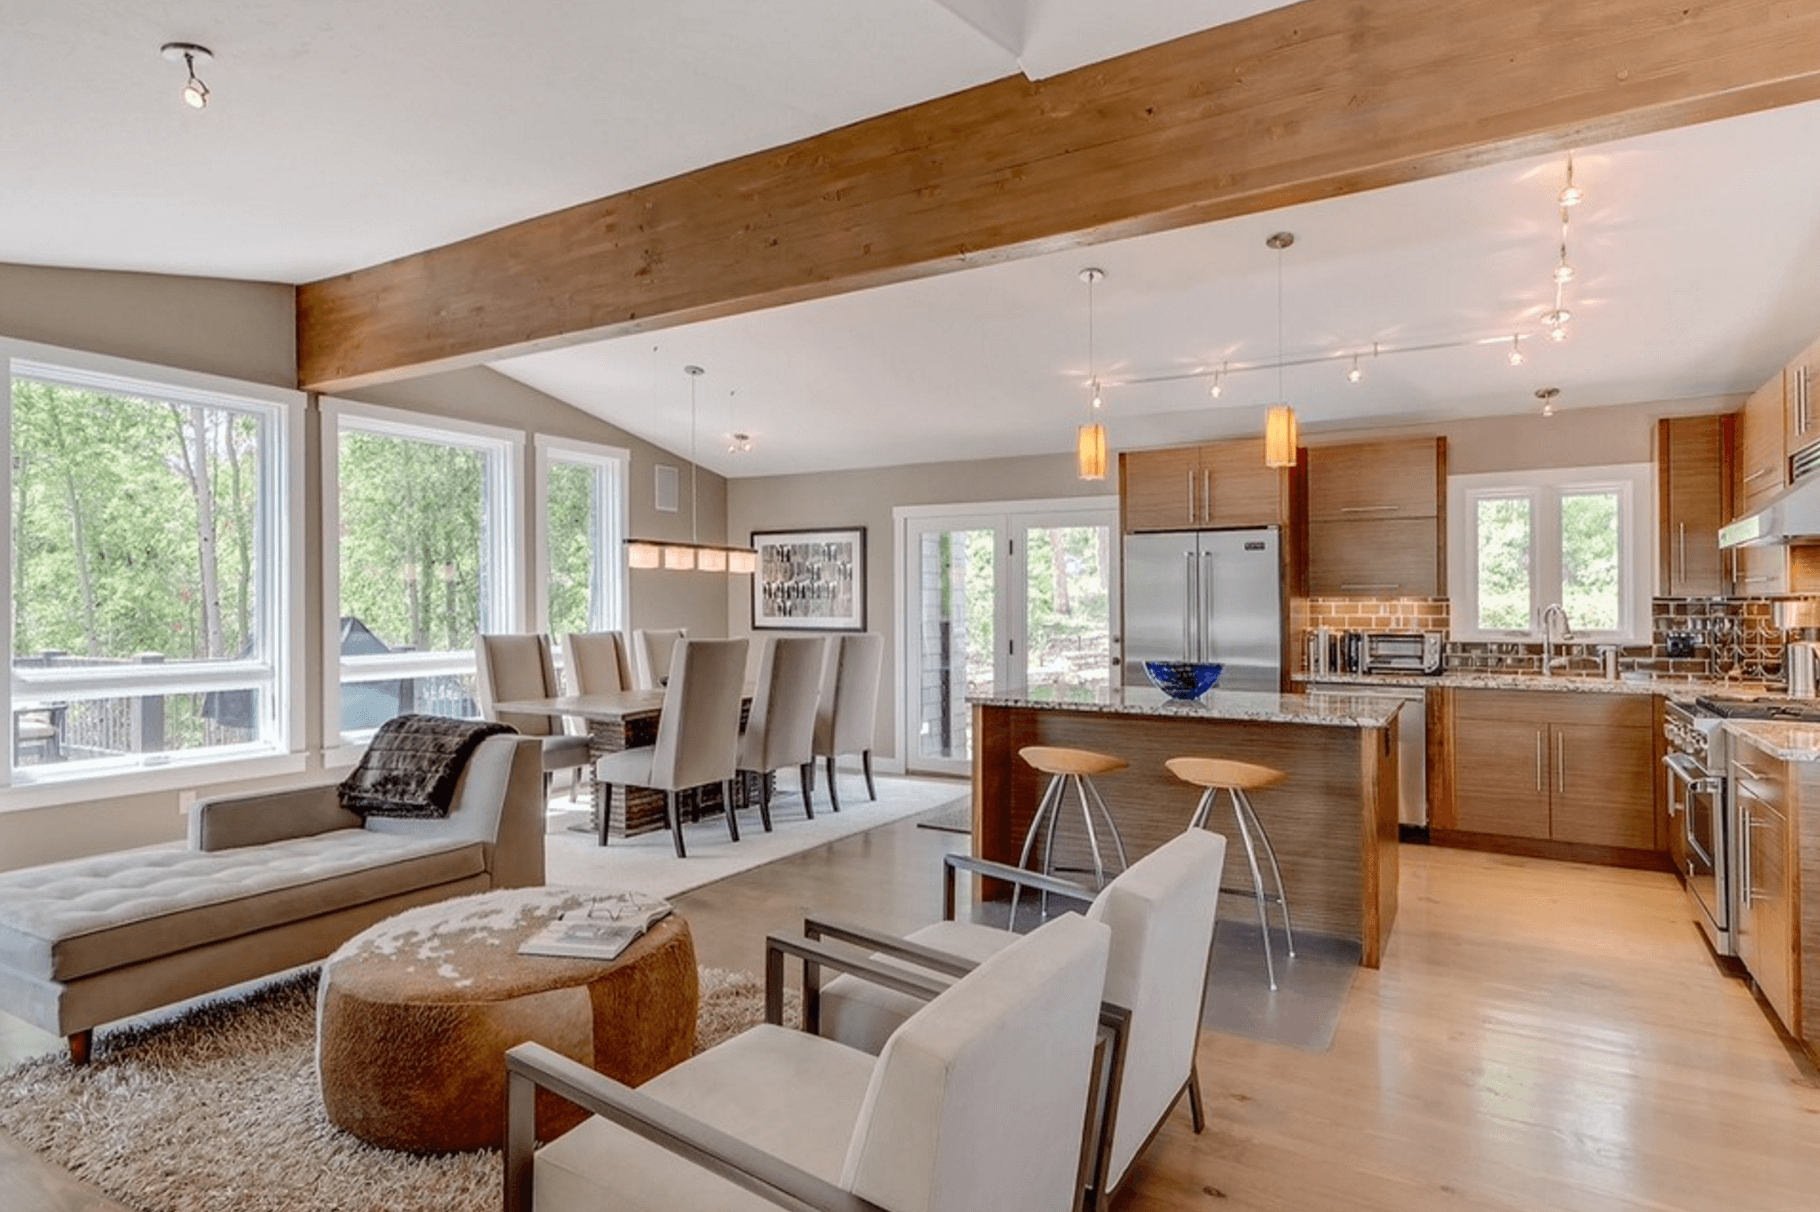 4 Simple Ways To Stage An Open Floor Plan